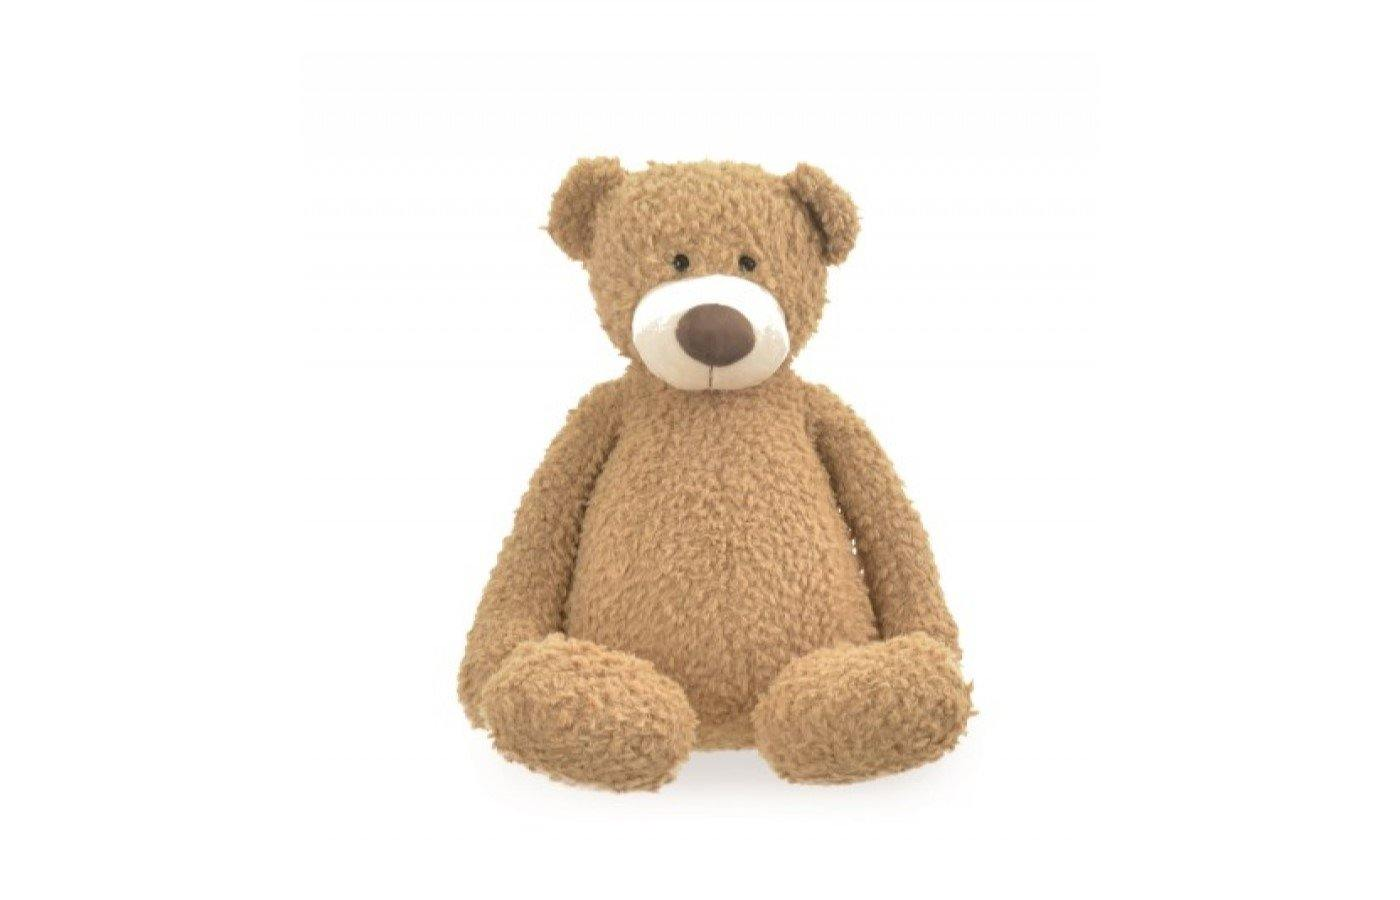 Oscar the Teddy Bear Plush Toy